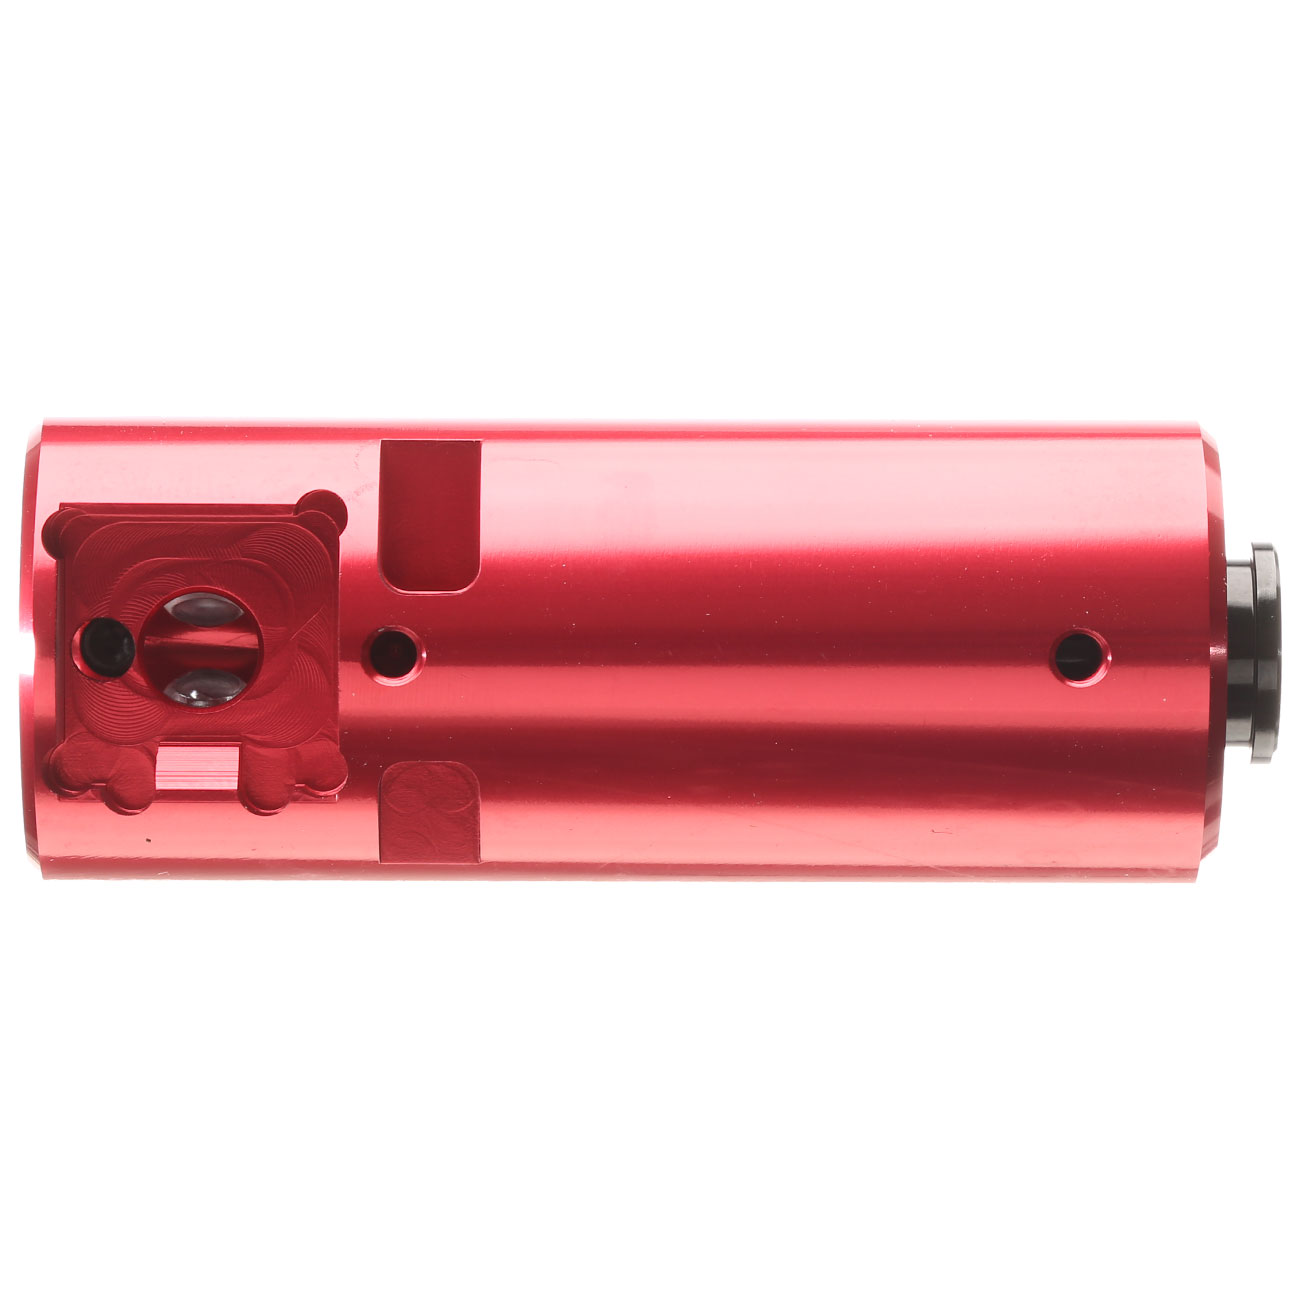 Action Army CNC Aluminium Hop-Up Chamber rot f. TM VSR-10 Gewehre 3